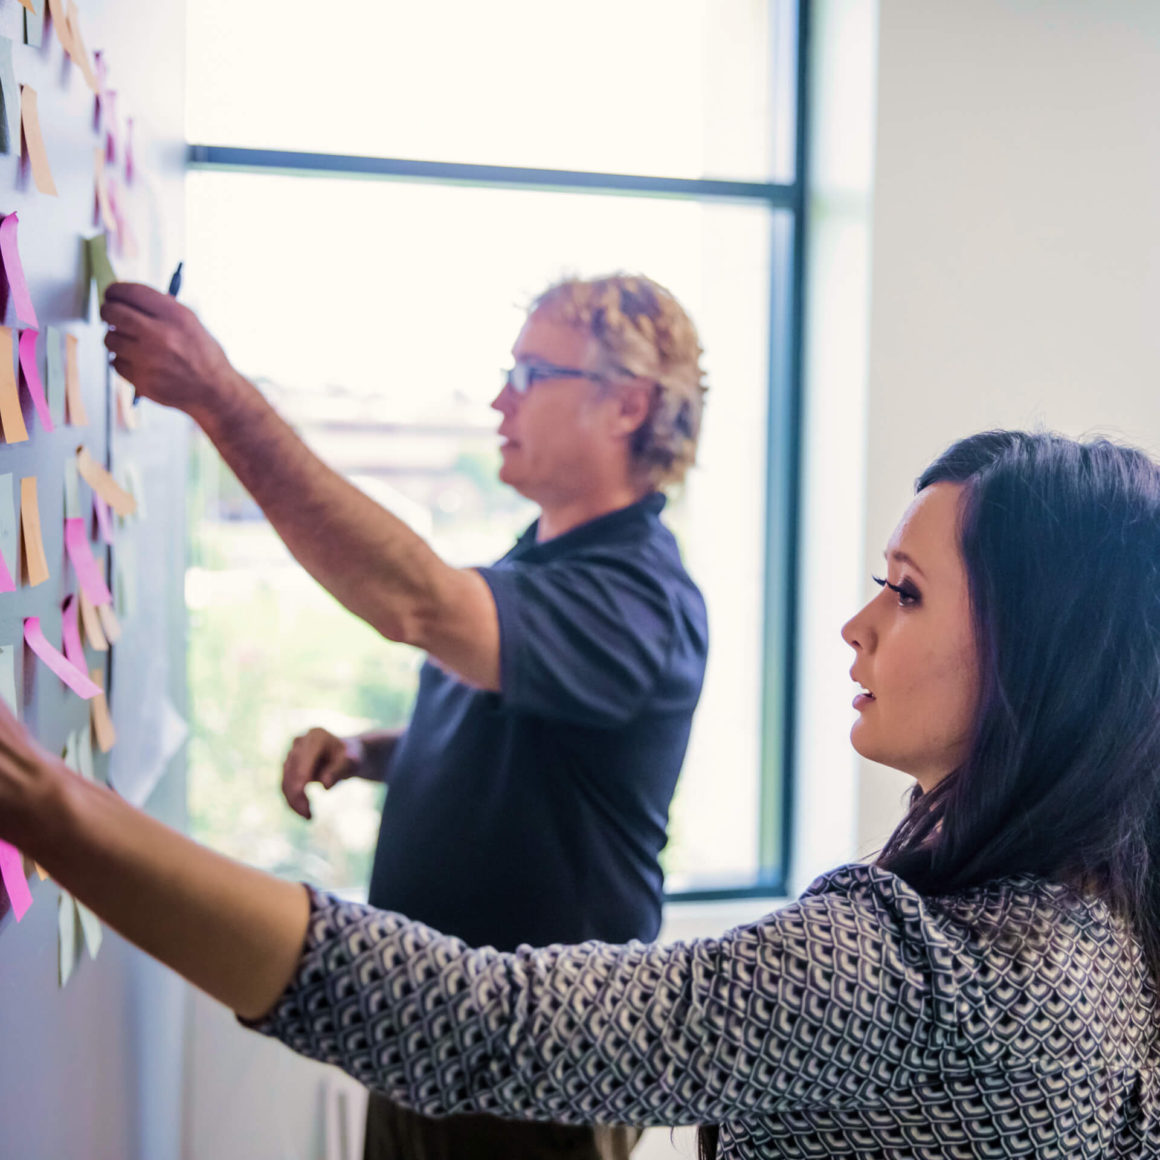 A man and woman in a conference room, sticking post-it notes on a whiteboard.